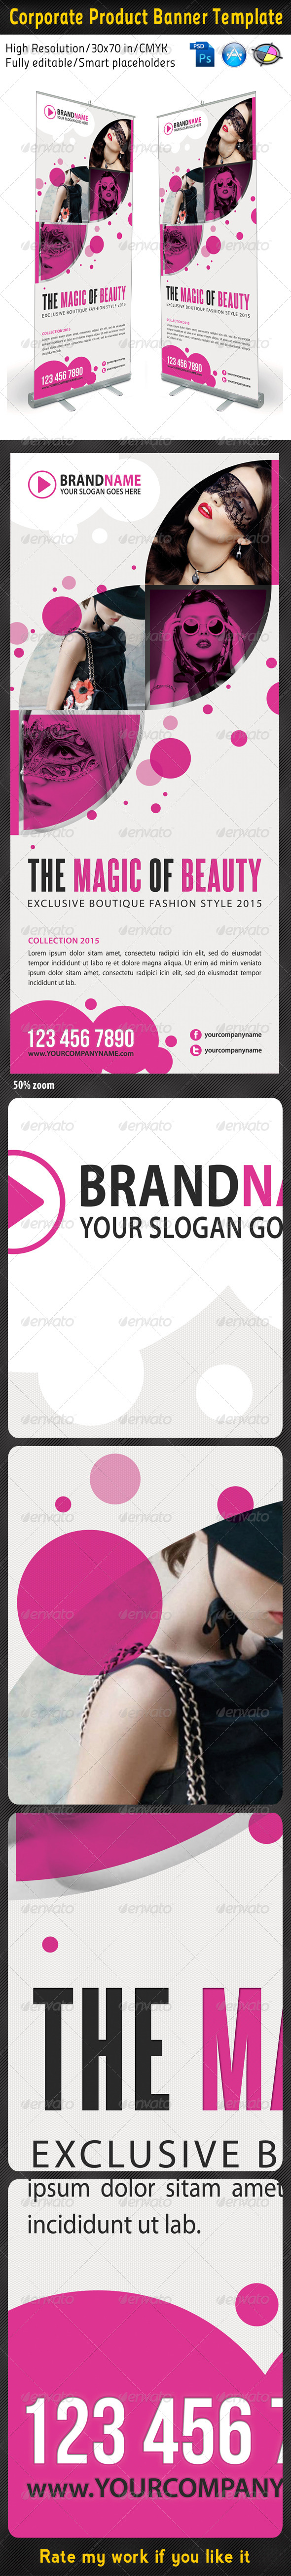 Fashion Multipurpose Banner Template 03 - Signage Print Templates